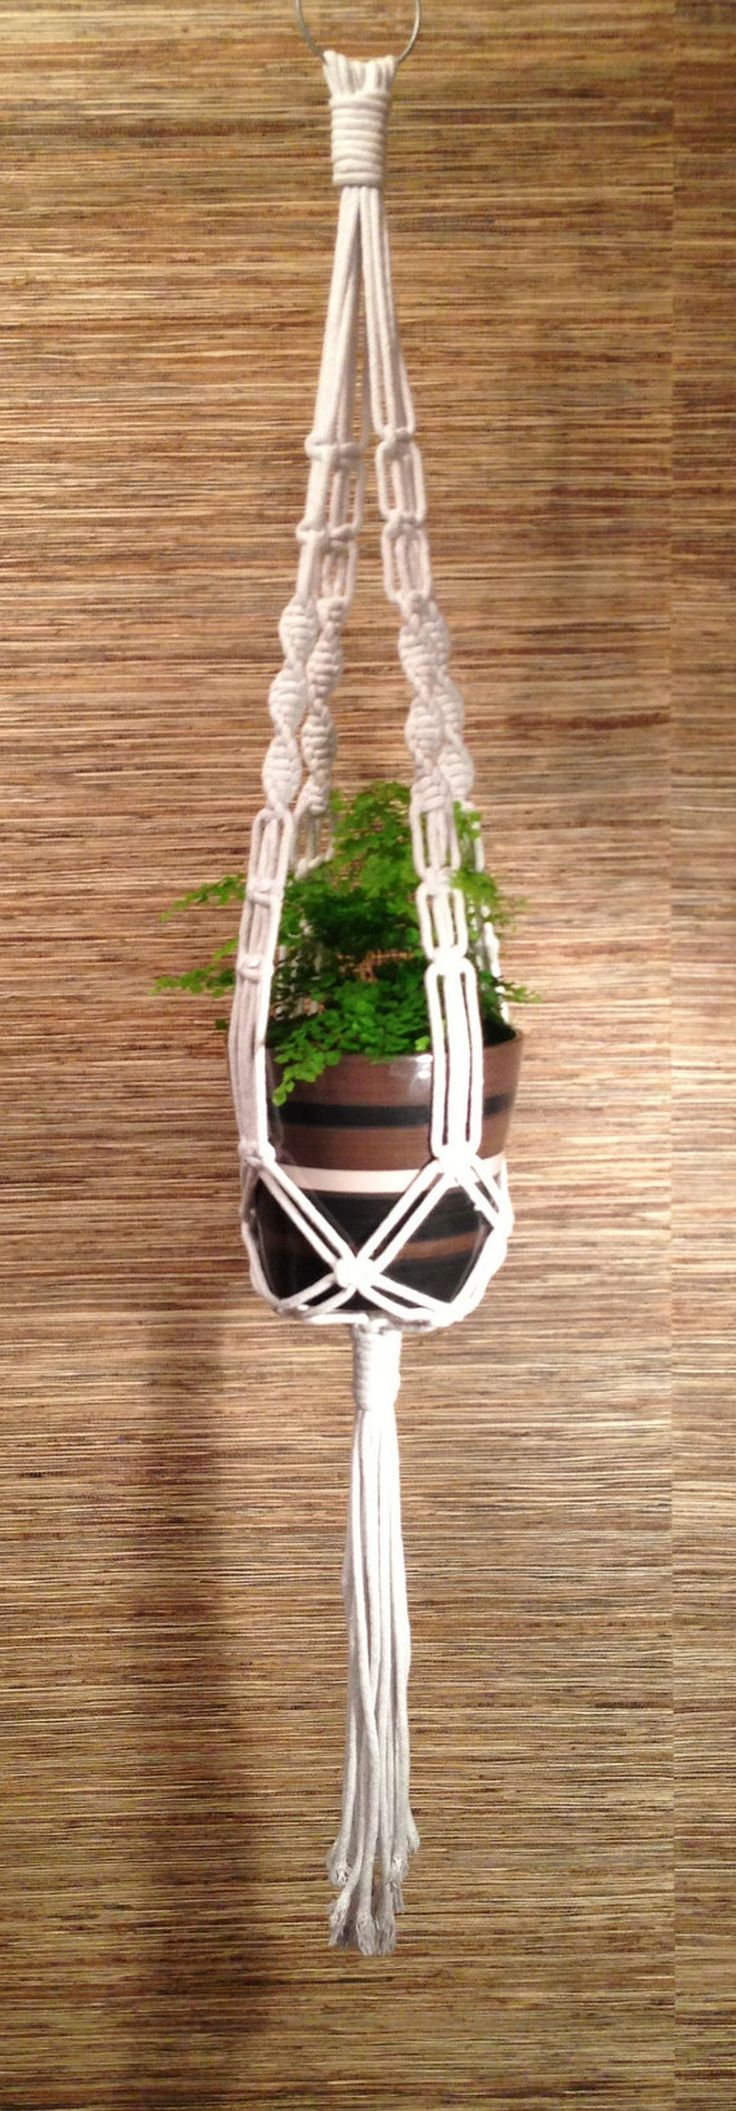 how to macrame plant hanger best 25 macrame plant hangers ideas on 8832